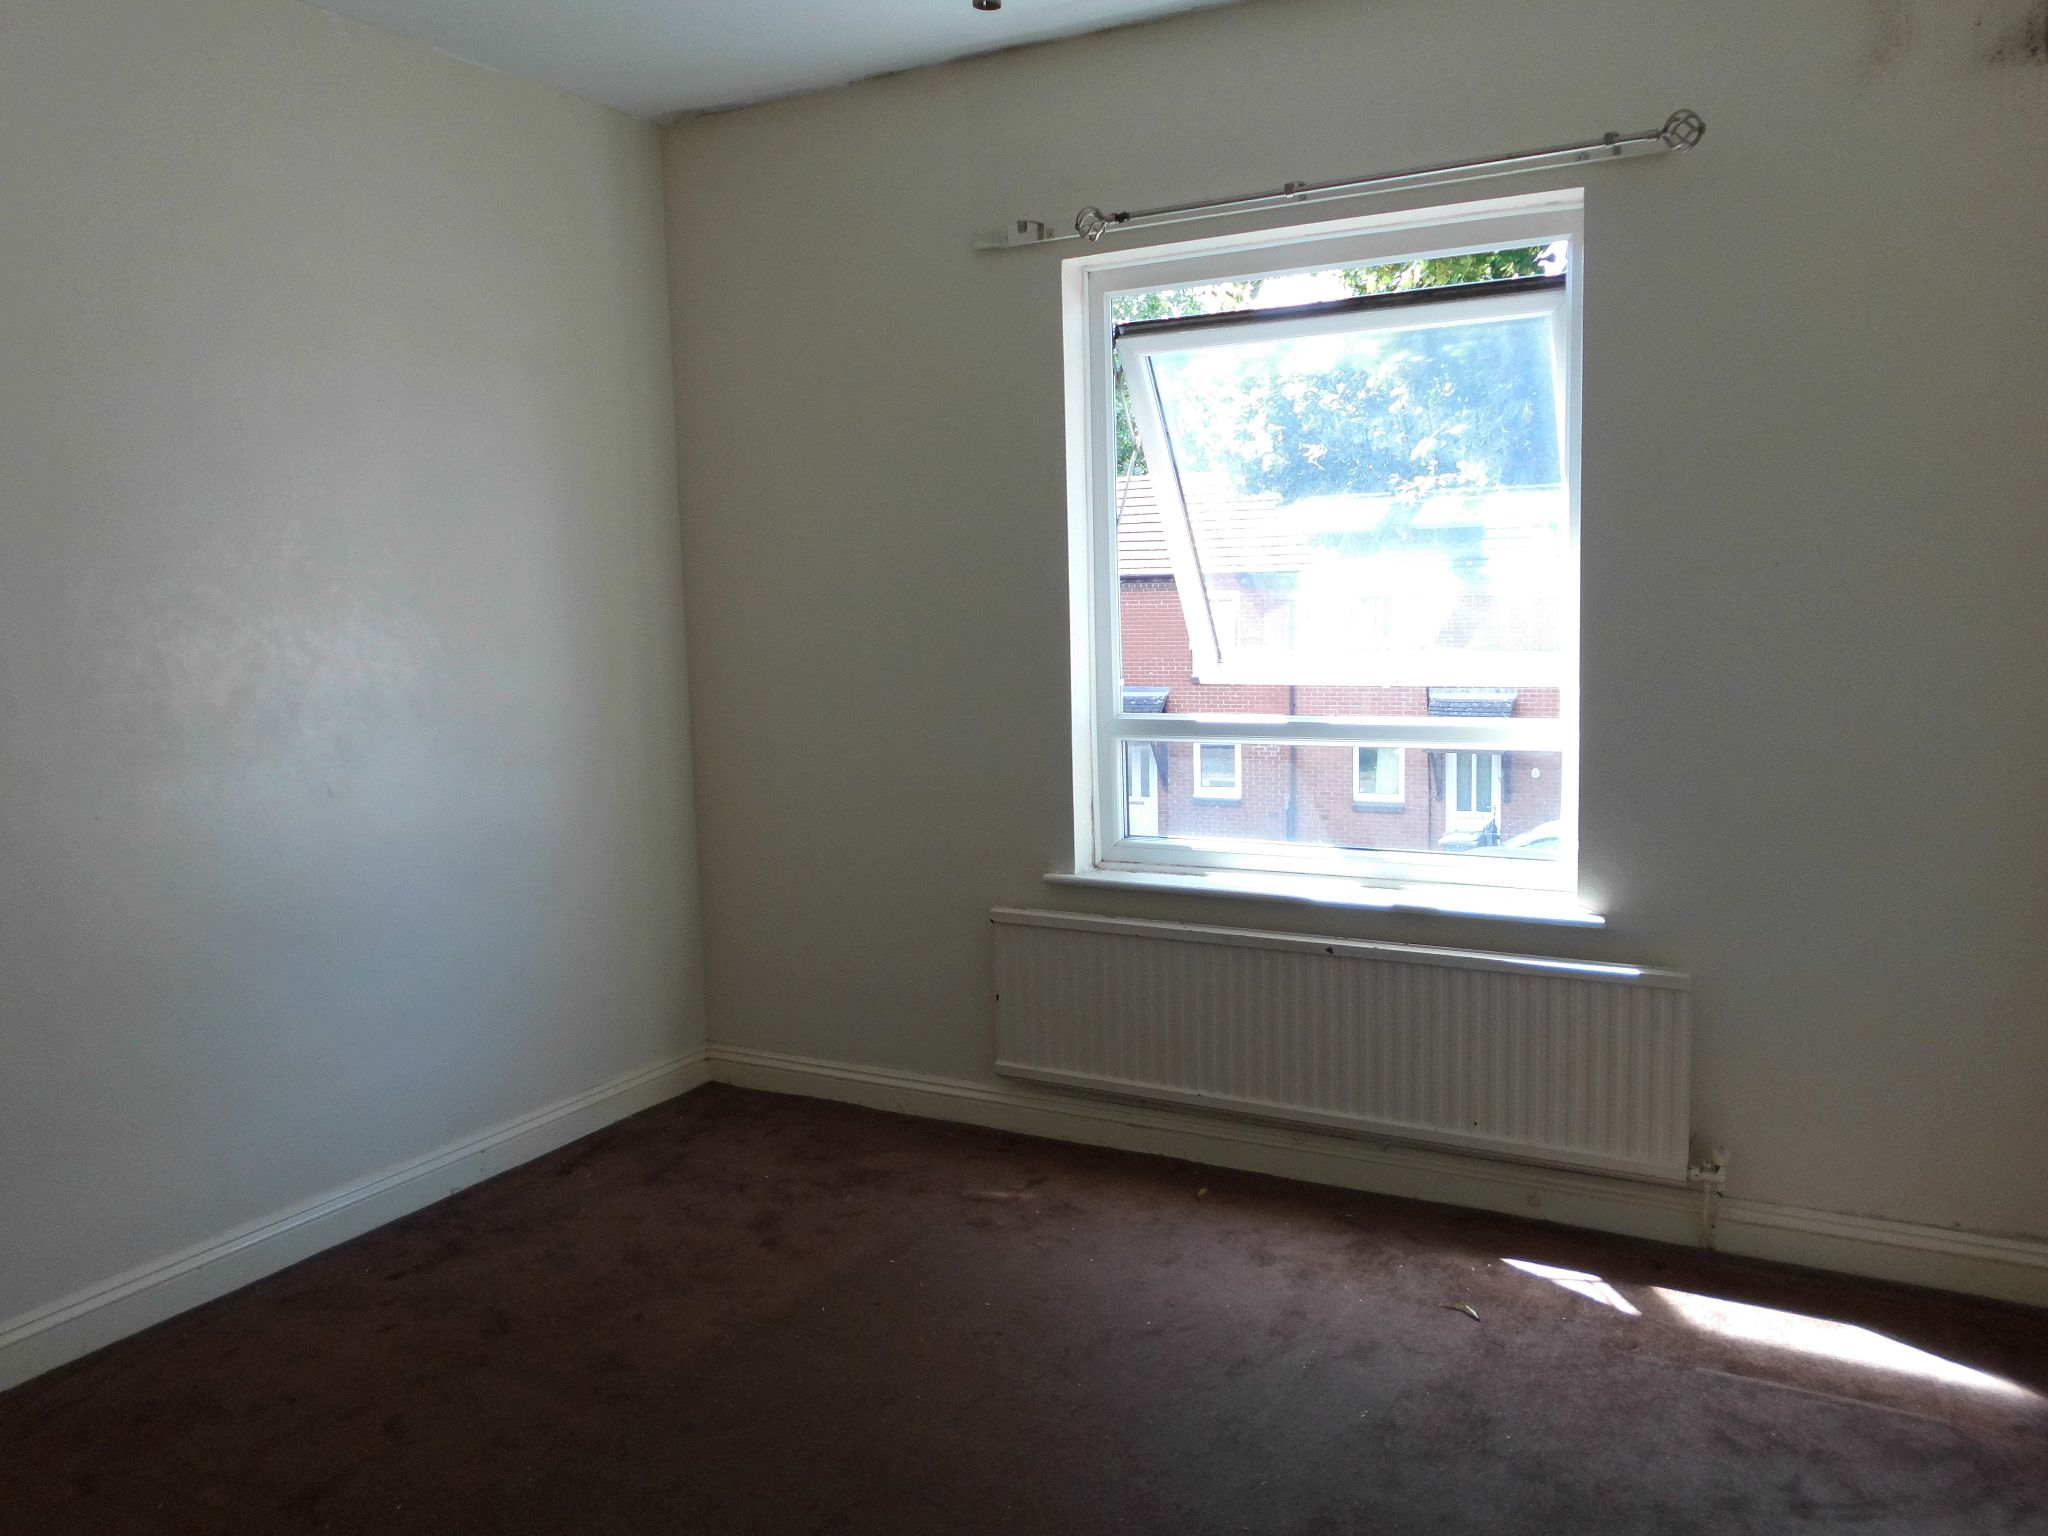 3 bedroom town house SSTC in Leicester - Photograph 4.